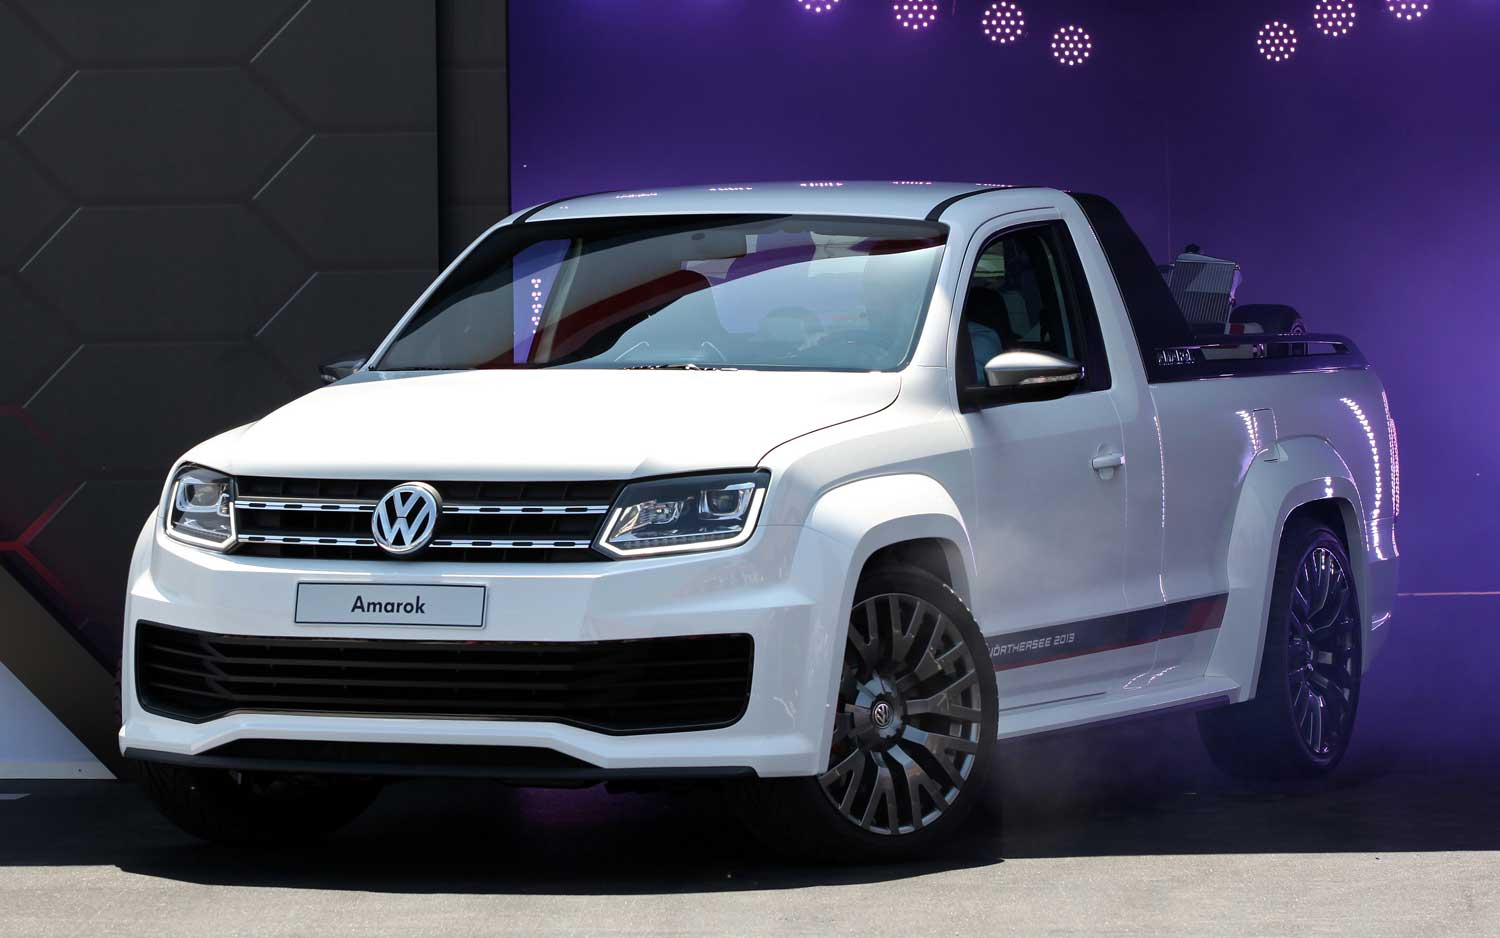 Auto and Cycle Track-Ready Volkswagen Amarok Concept Debuts at Worthersee.  Article by Zach Gale posted May 8, 2013